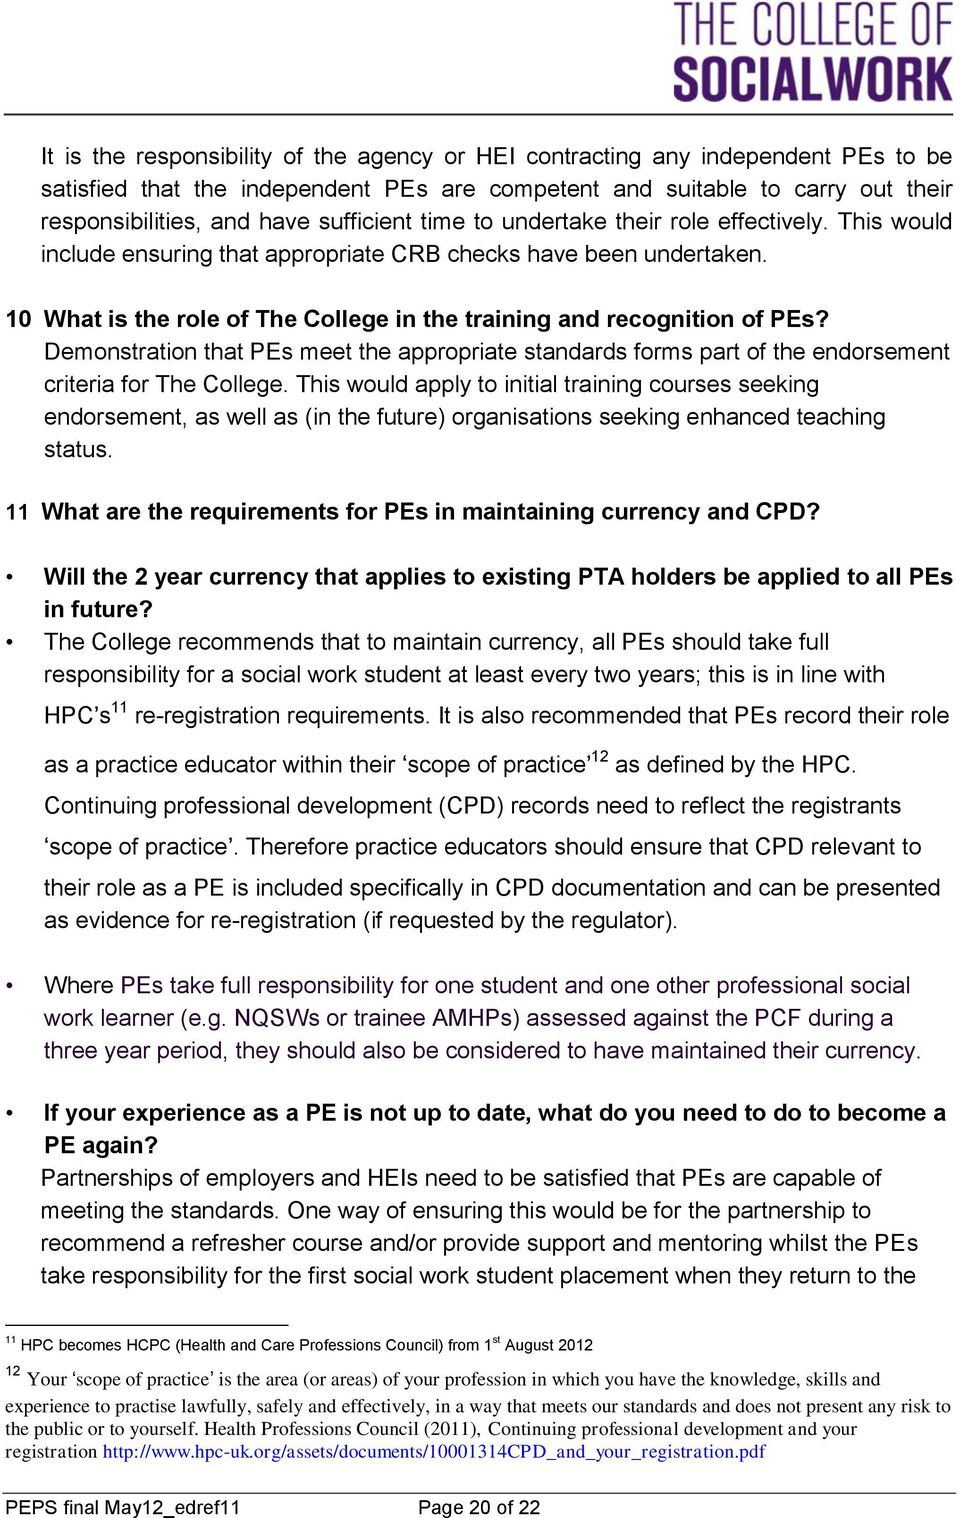 10 What is the role of The College in the training and recognition of PEs? Demonstration that PEs meet the appropriate standards forms part of the endorsement criteria for The College.